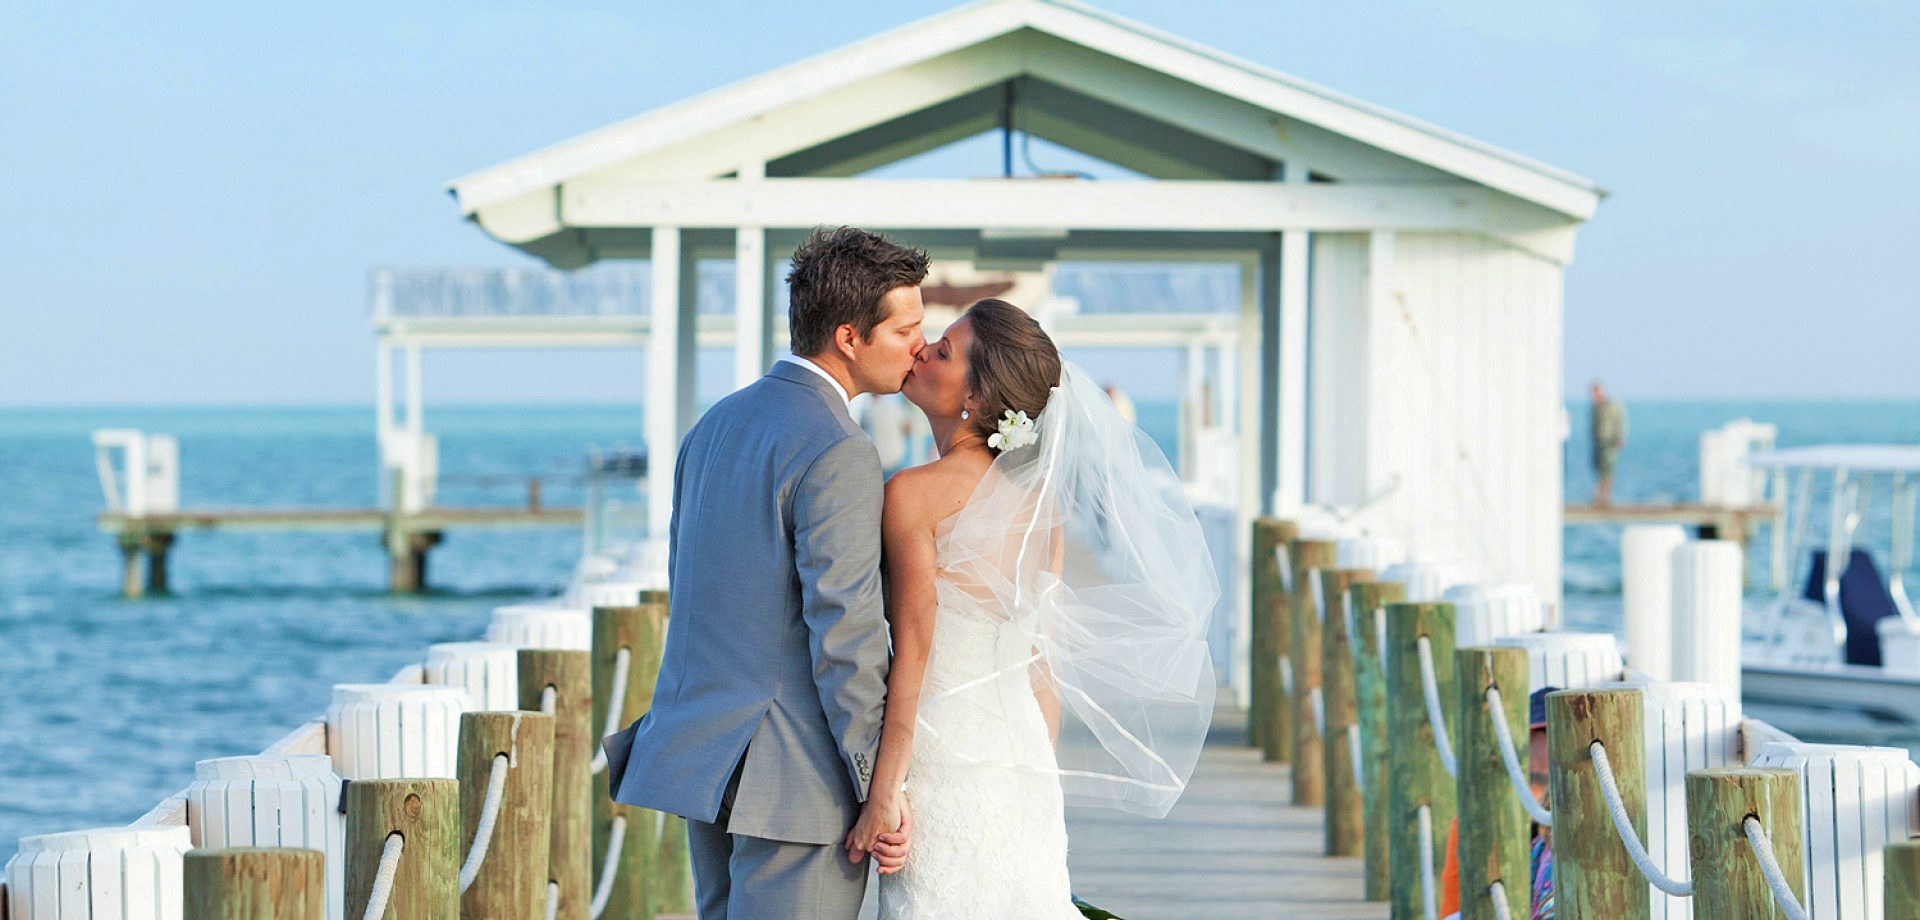 Newly Married Couple Kiss on the Boardwalk